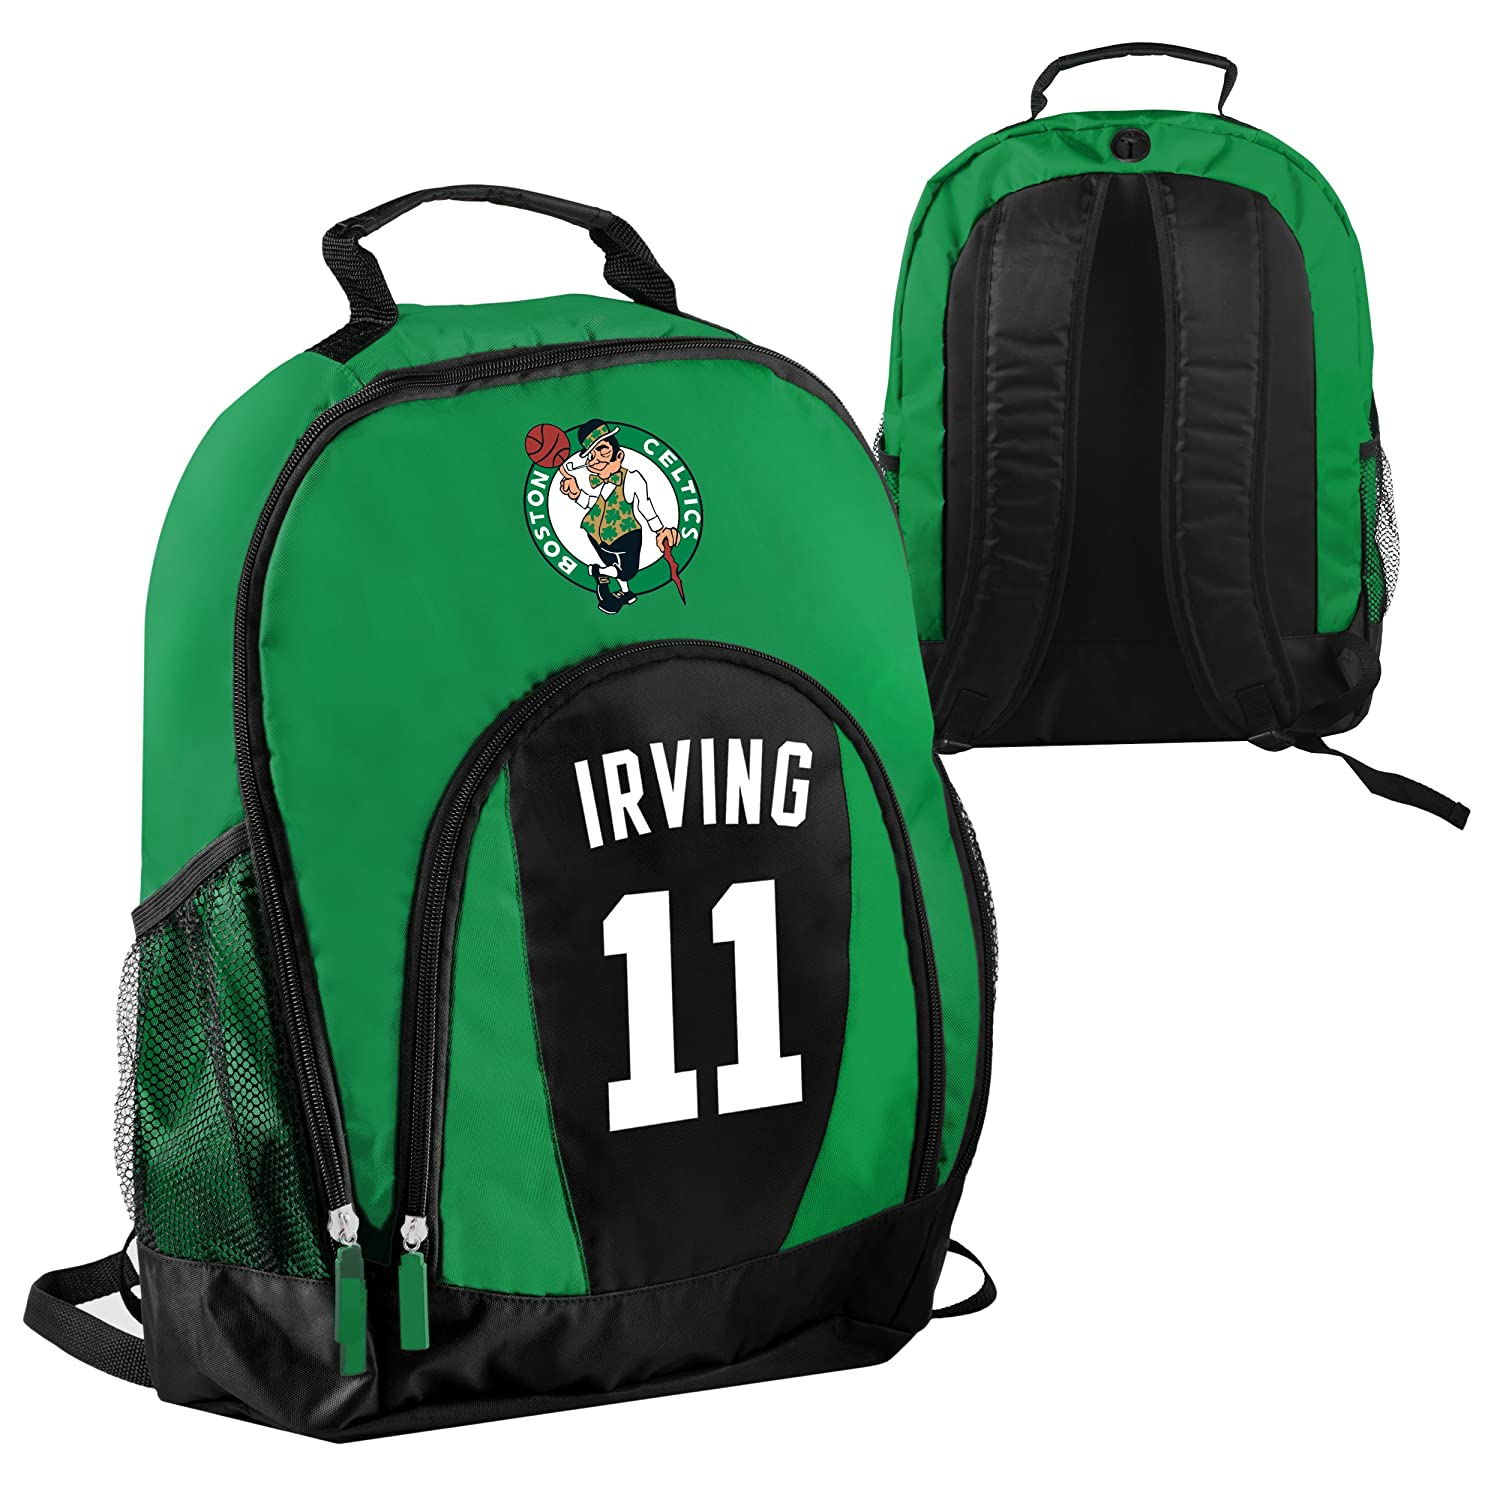 Forever Collectibles NBA Boston Celtics Kyrie Irving 11 Primetime Backpack School Gym Bag   B07BN3CRDT